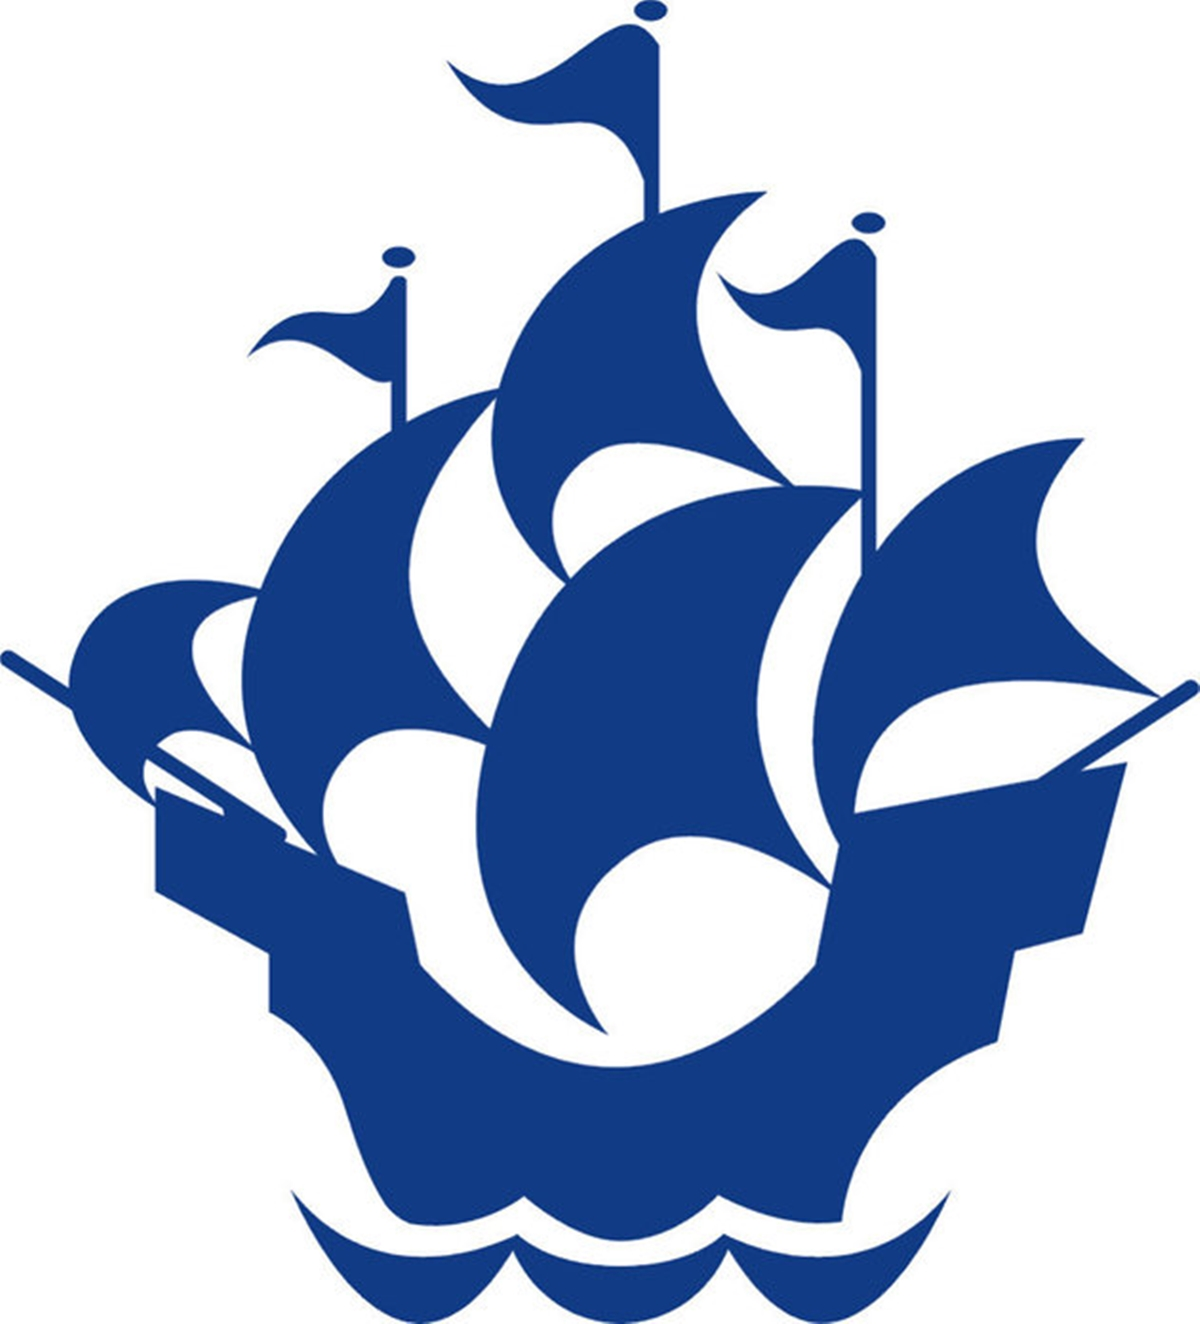 1 12 Interesting Facts About Blue Peter